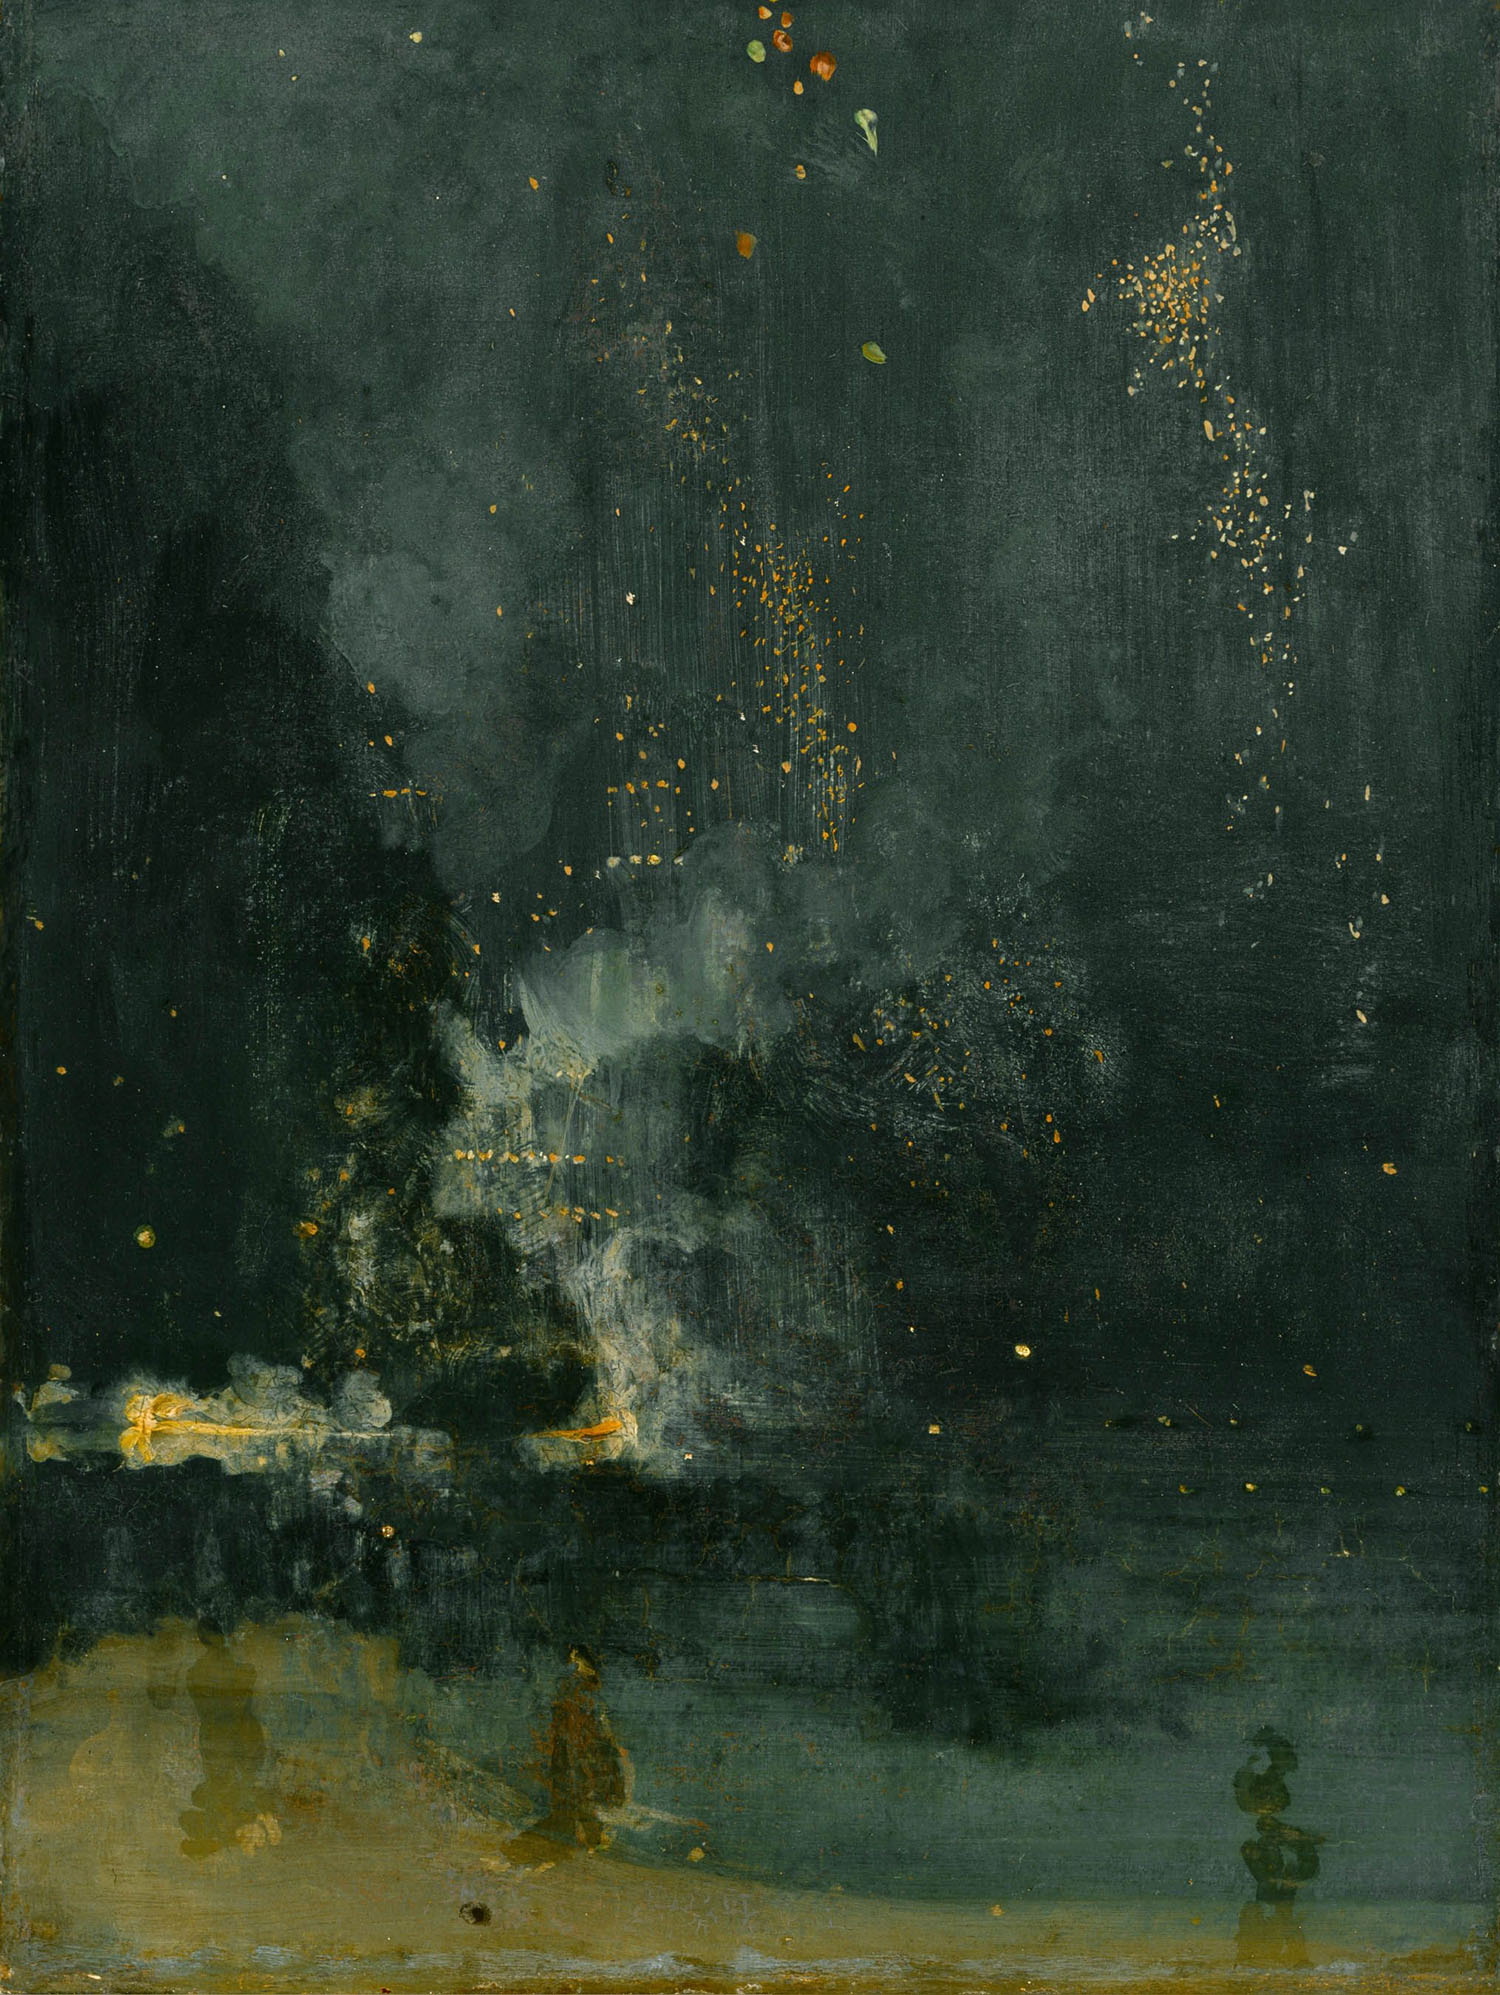 medium-roberson-atelier-fontaines-whistler-nocturne-in-black-and-gold.jpg